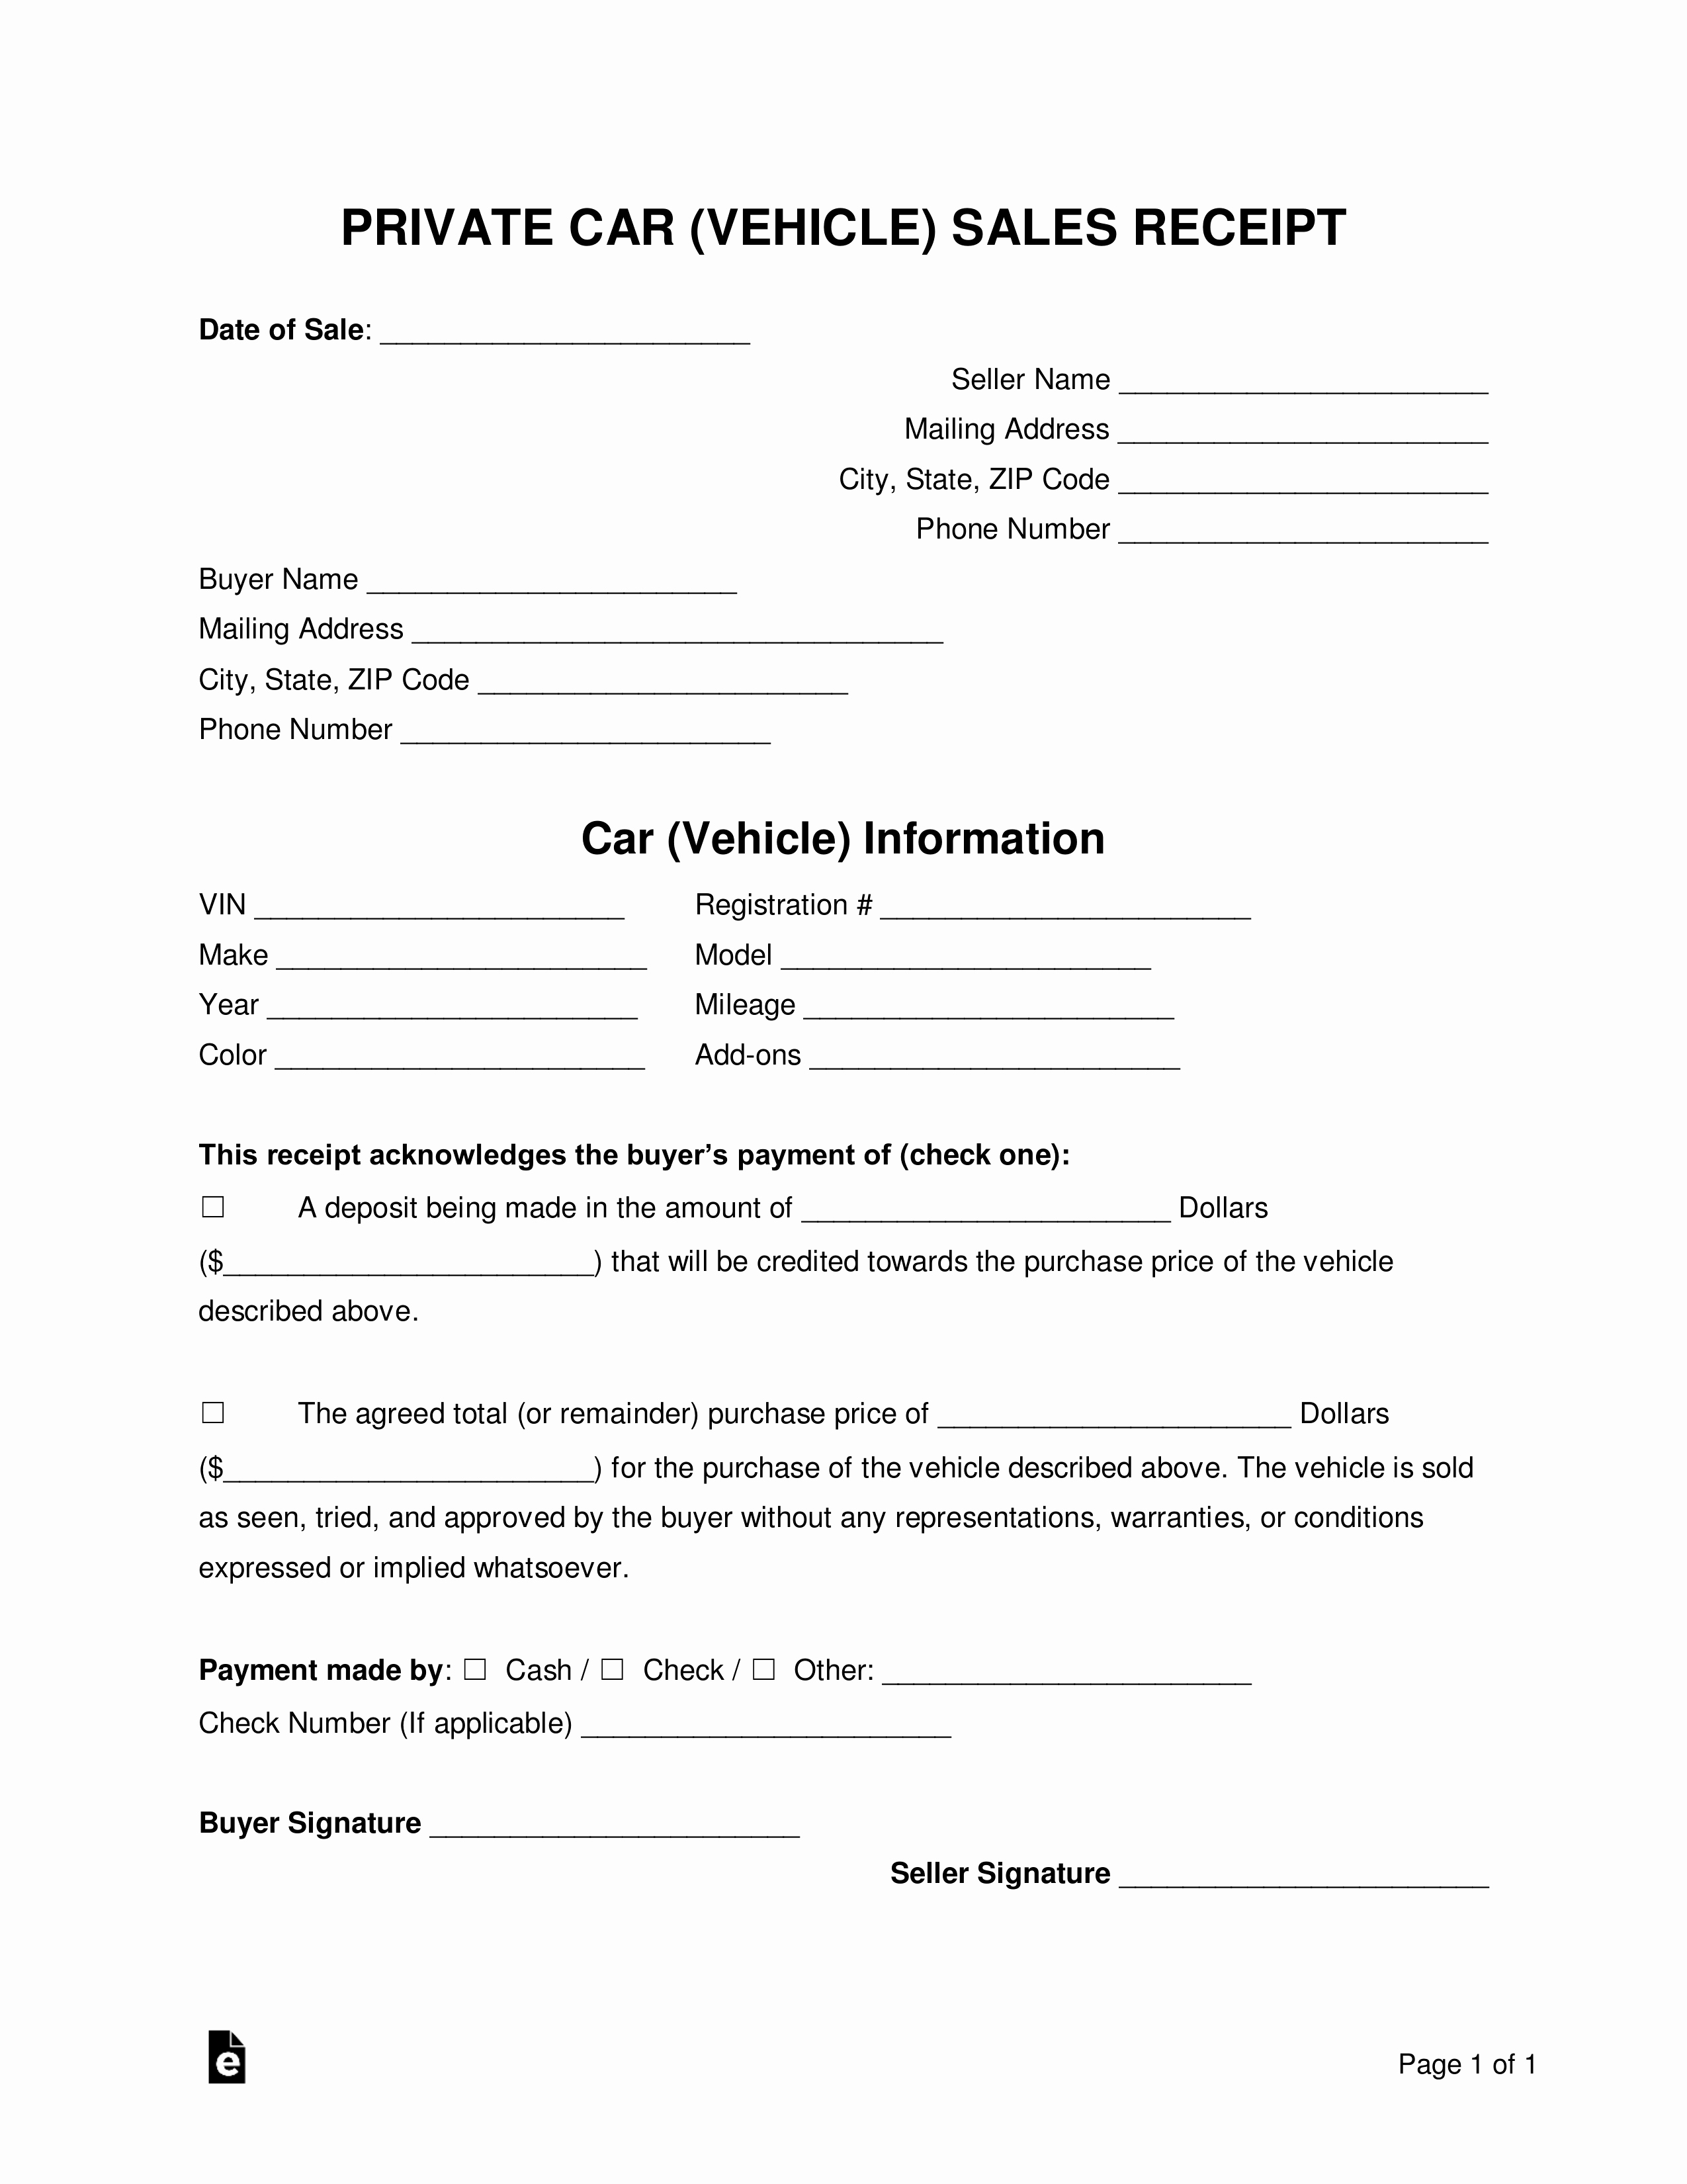 Car for Sale Template Free Elegant Free Vehicle Private Sale Receipt Template Pdf Word